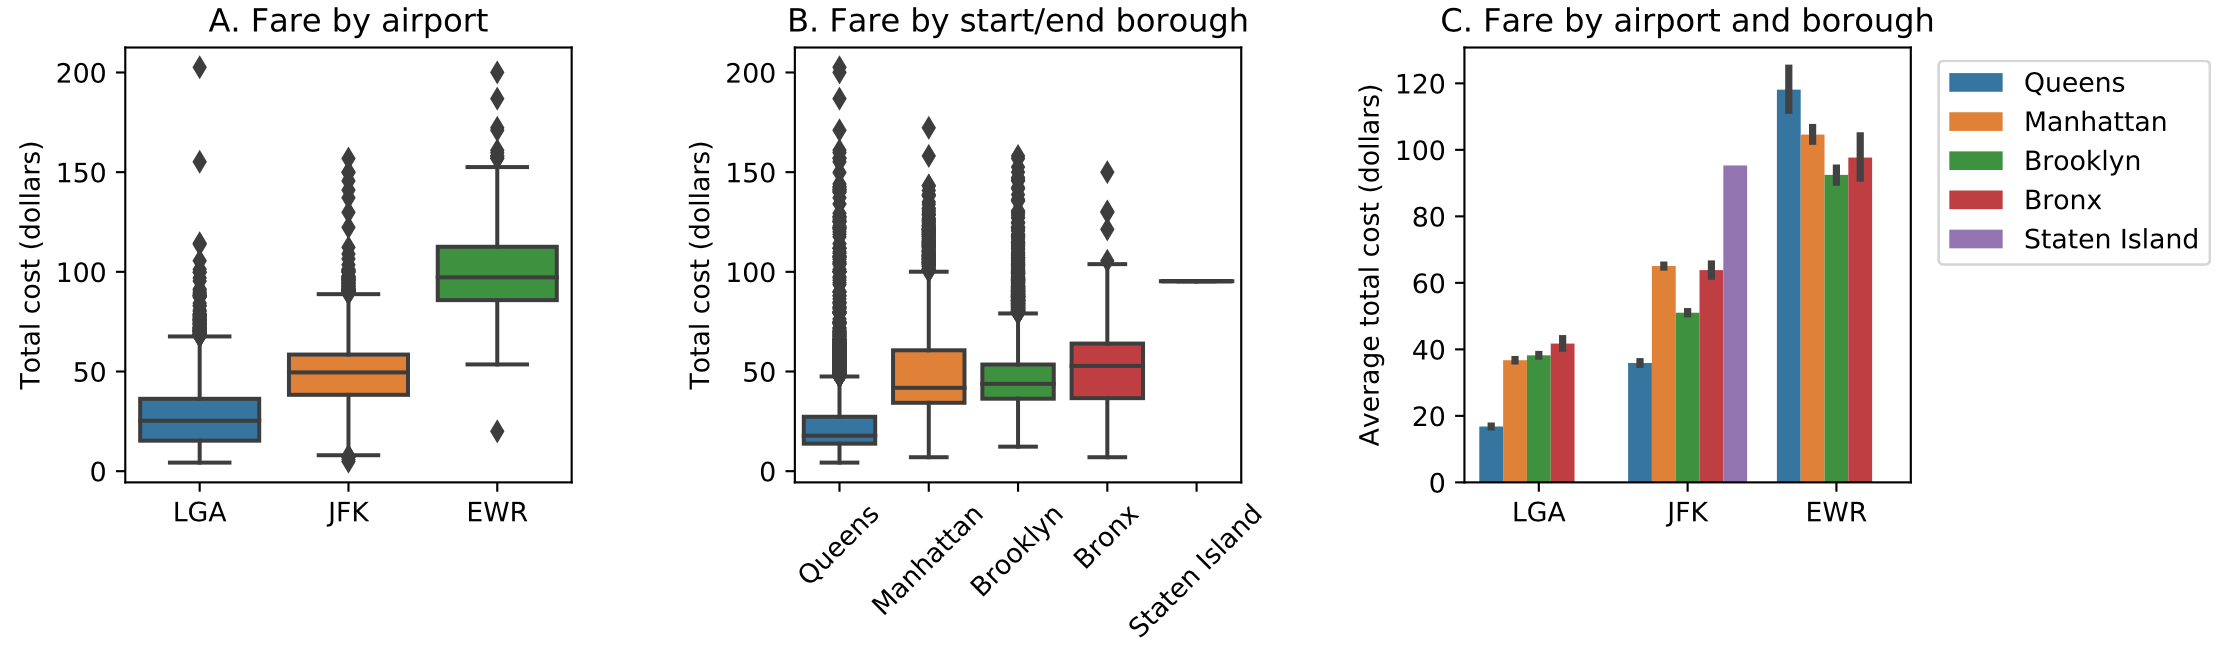 Looking Through the Taxi Meter - Analysis of the NYC Green